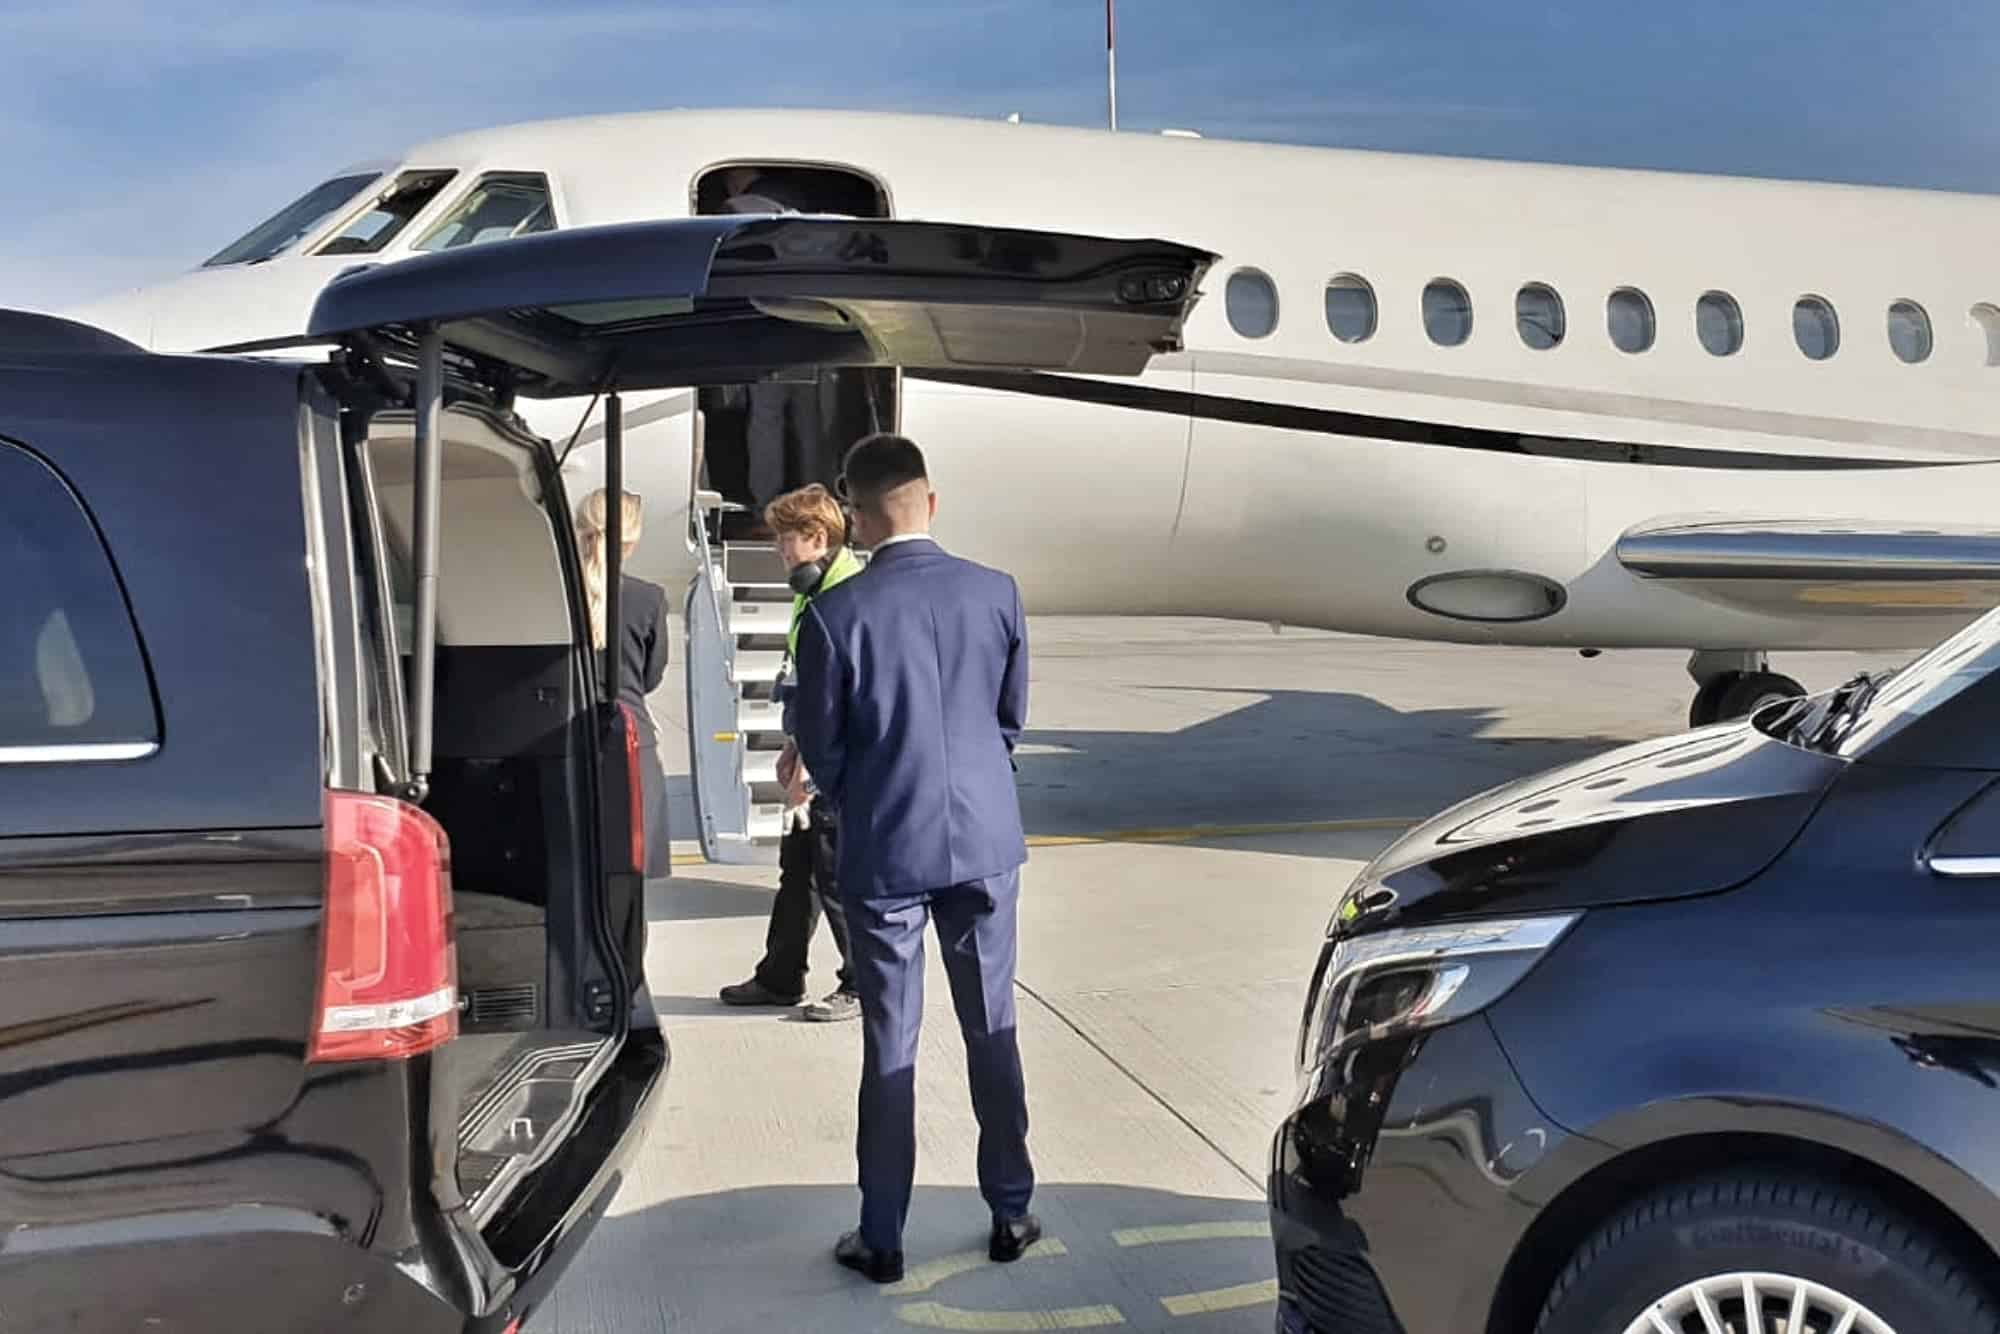 Chauffeur picking up passengers from the private jet at the Krakow Airport